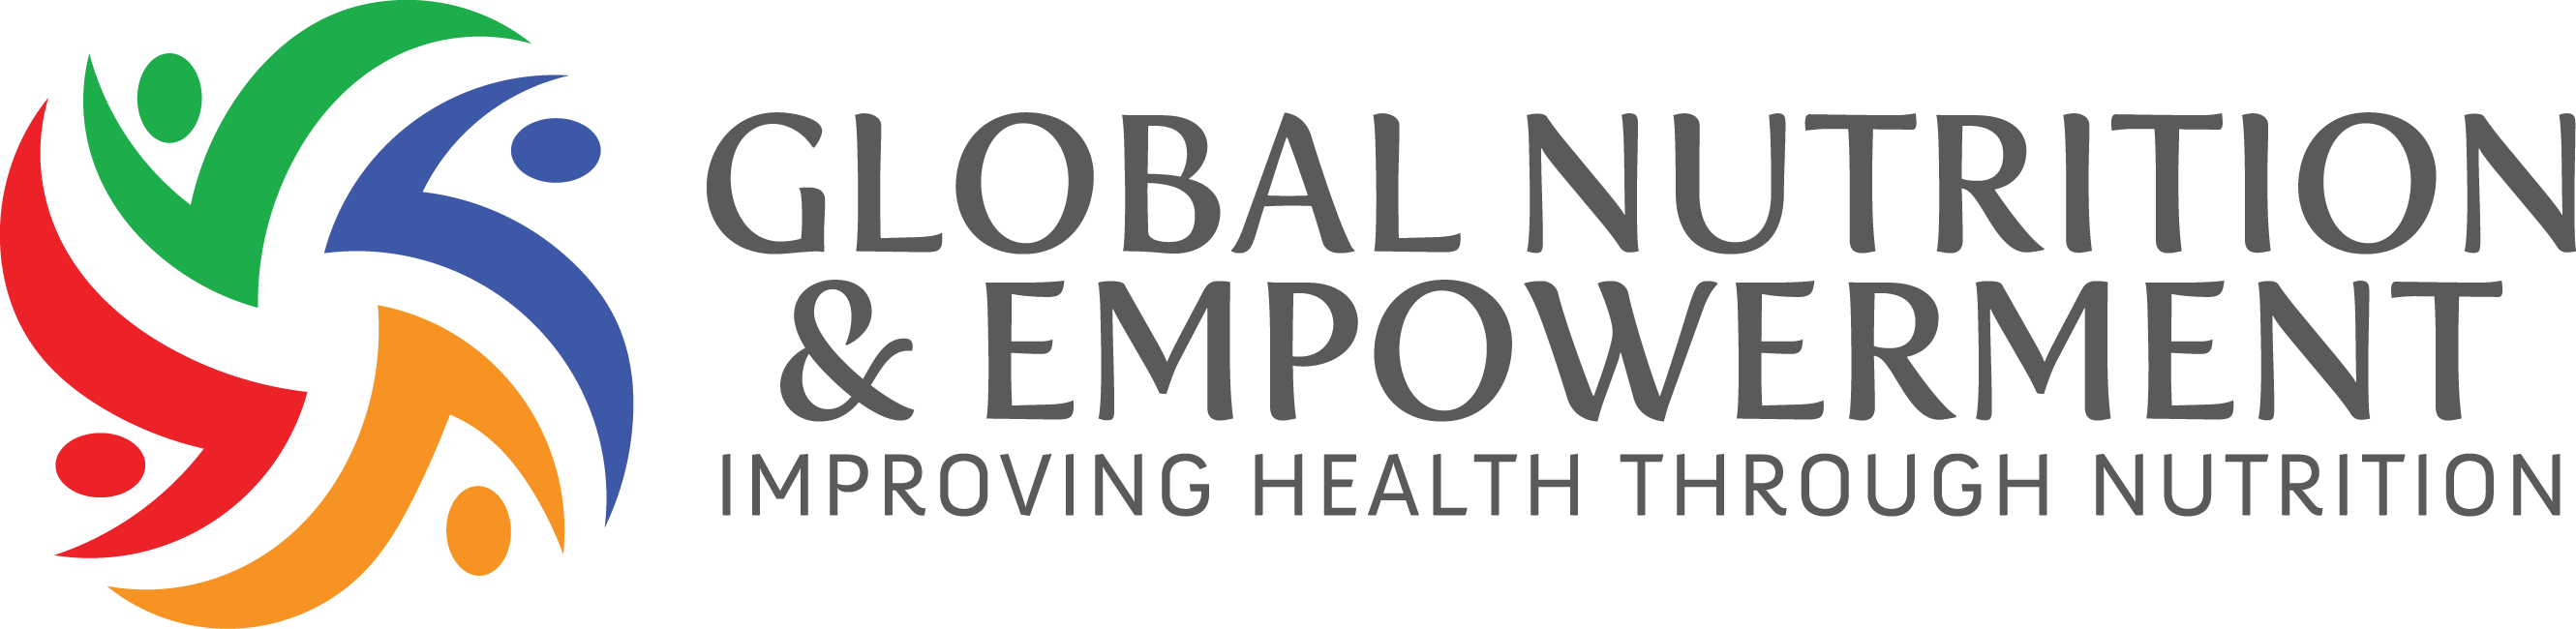 Global Nutrition Empowerment